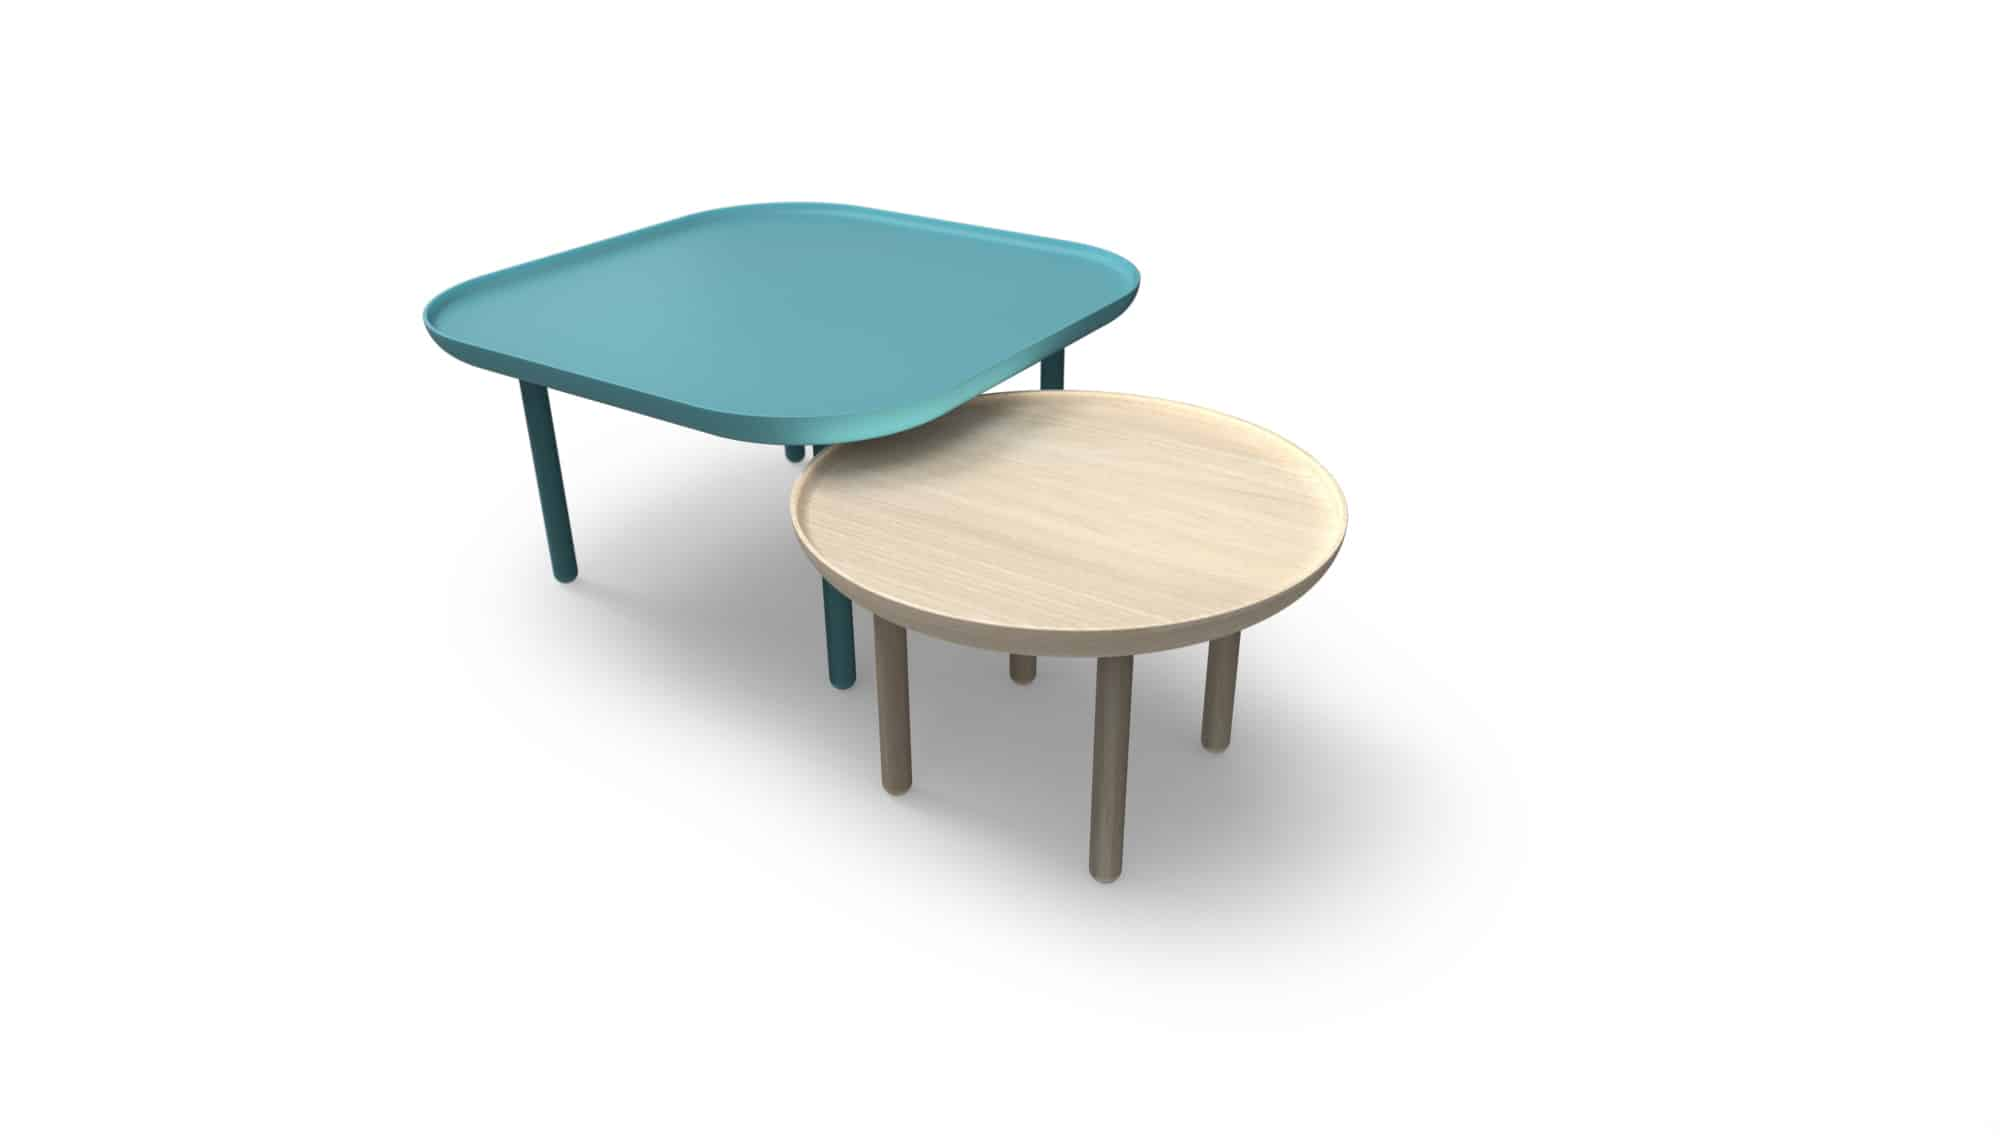 13 panda table by matti klenell scandinavian design for 13 table